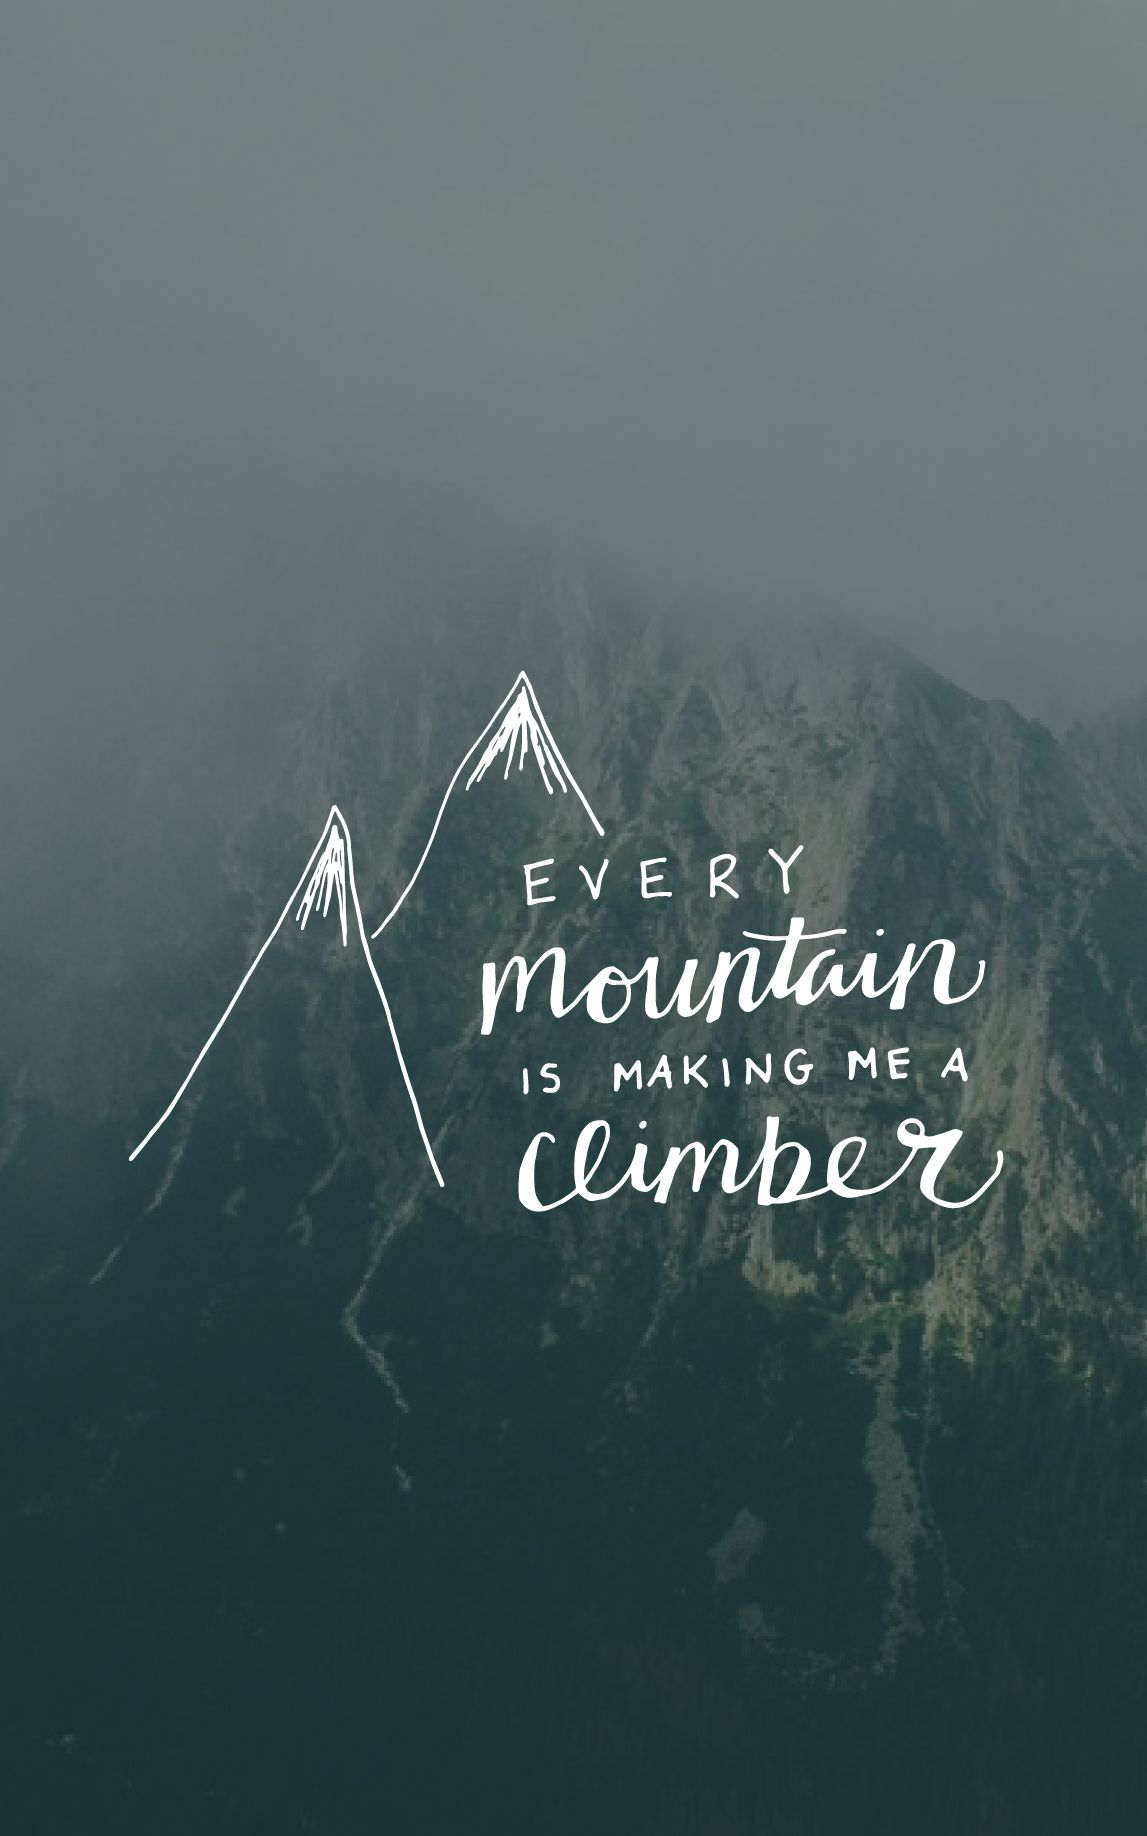 every mountain making me a climber, meredith andrews britt